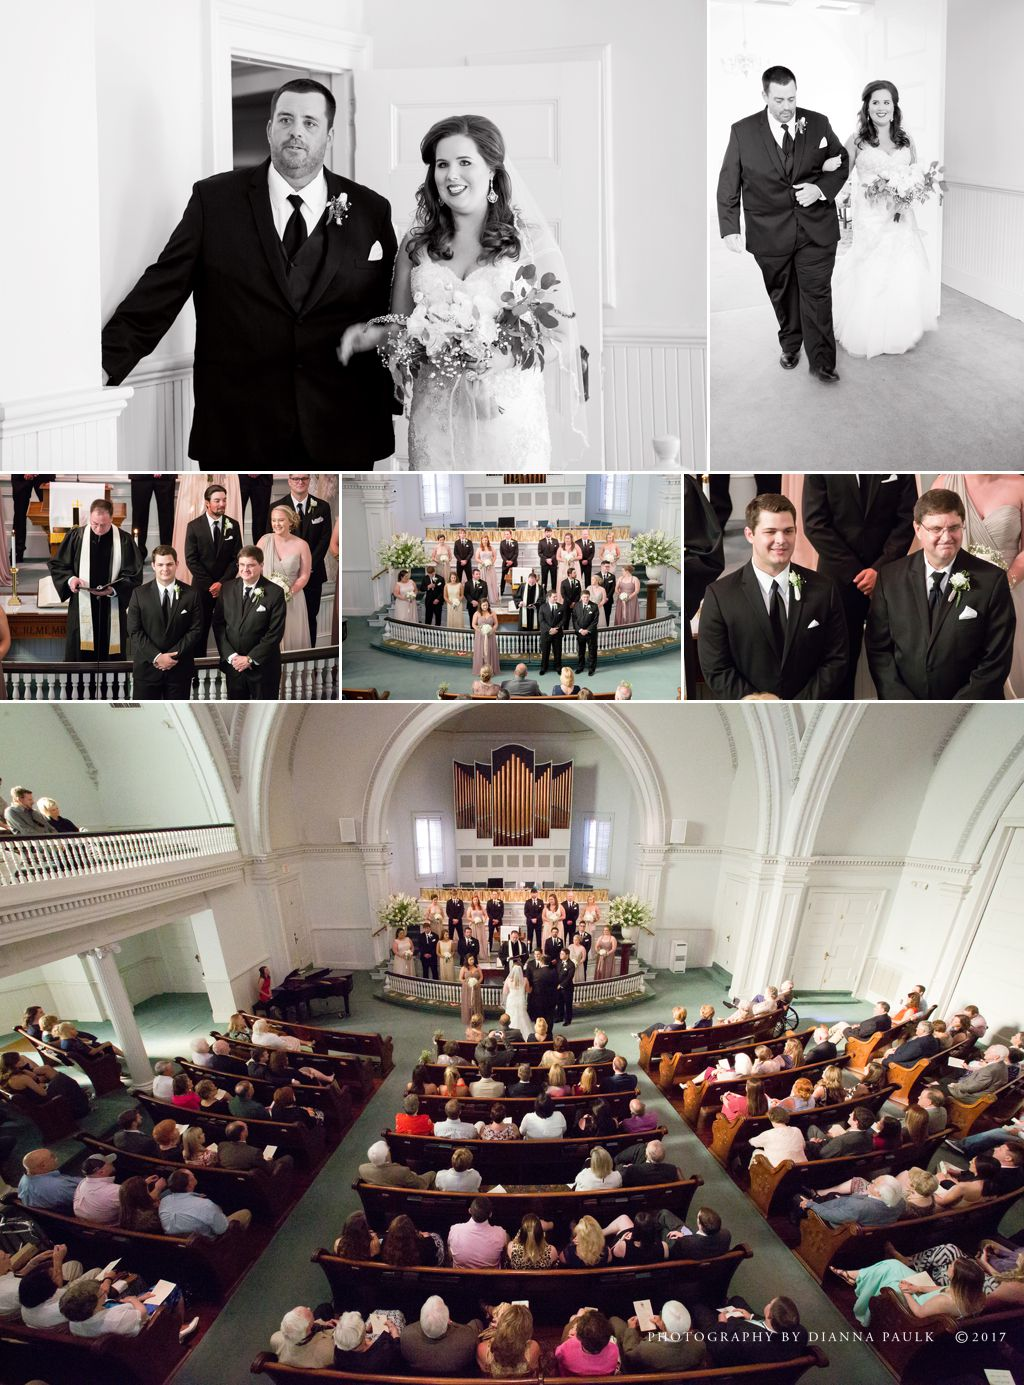 Wedding at First United Methodist Church of Troy AL; Photography by DiAnna Paulk, a certified professional photographer in Montgomery AL